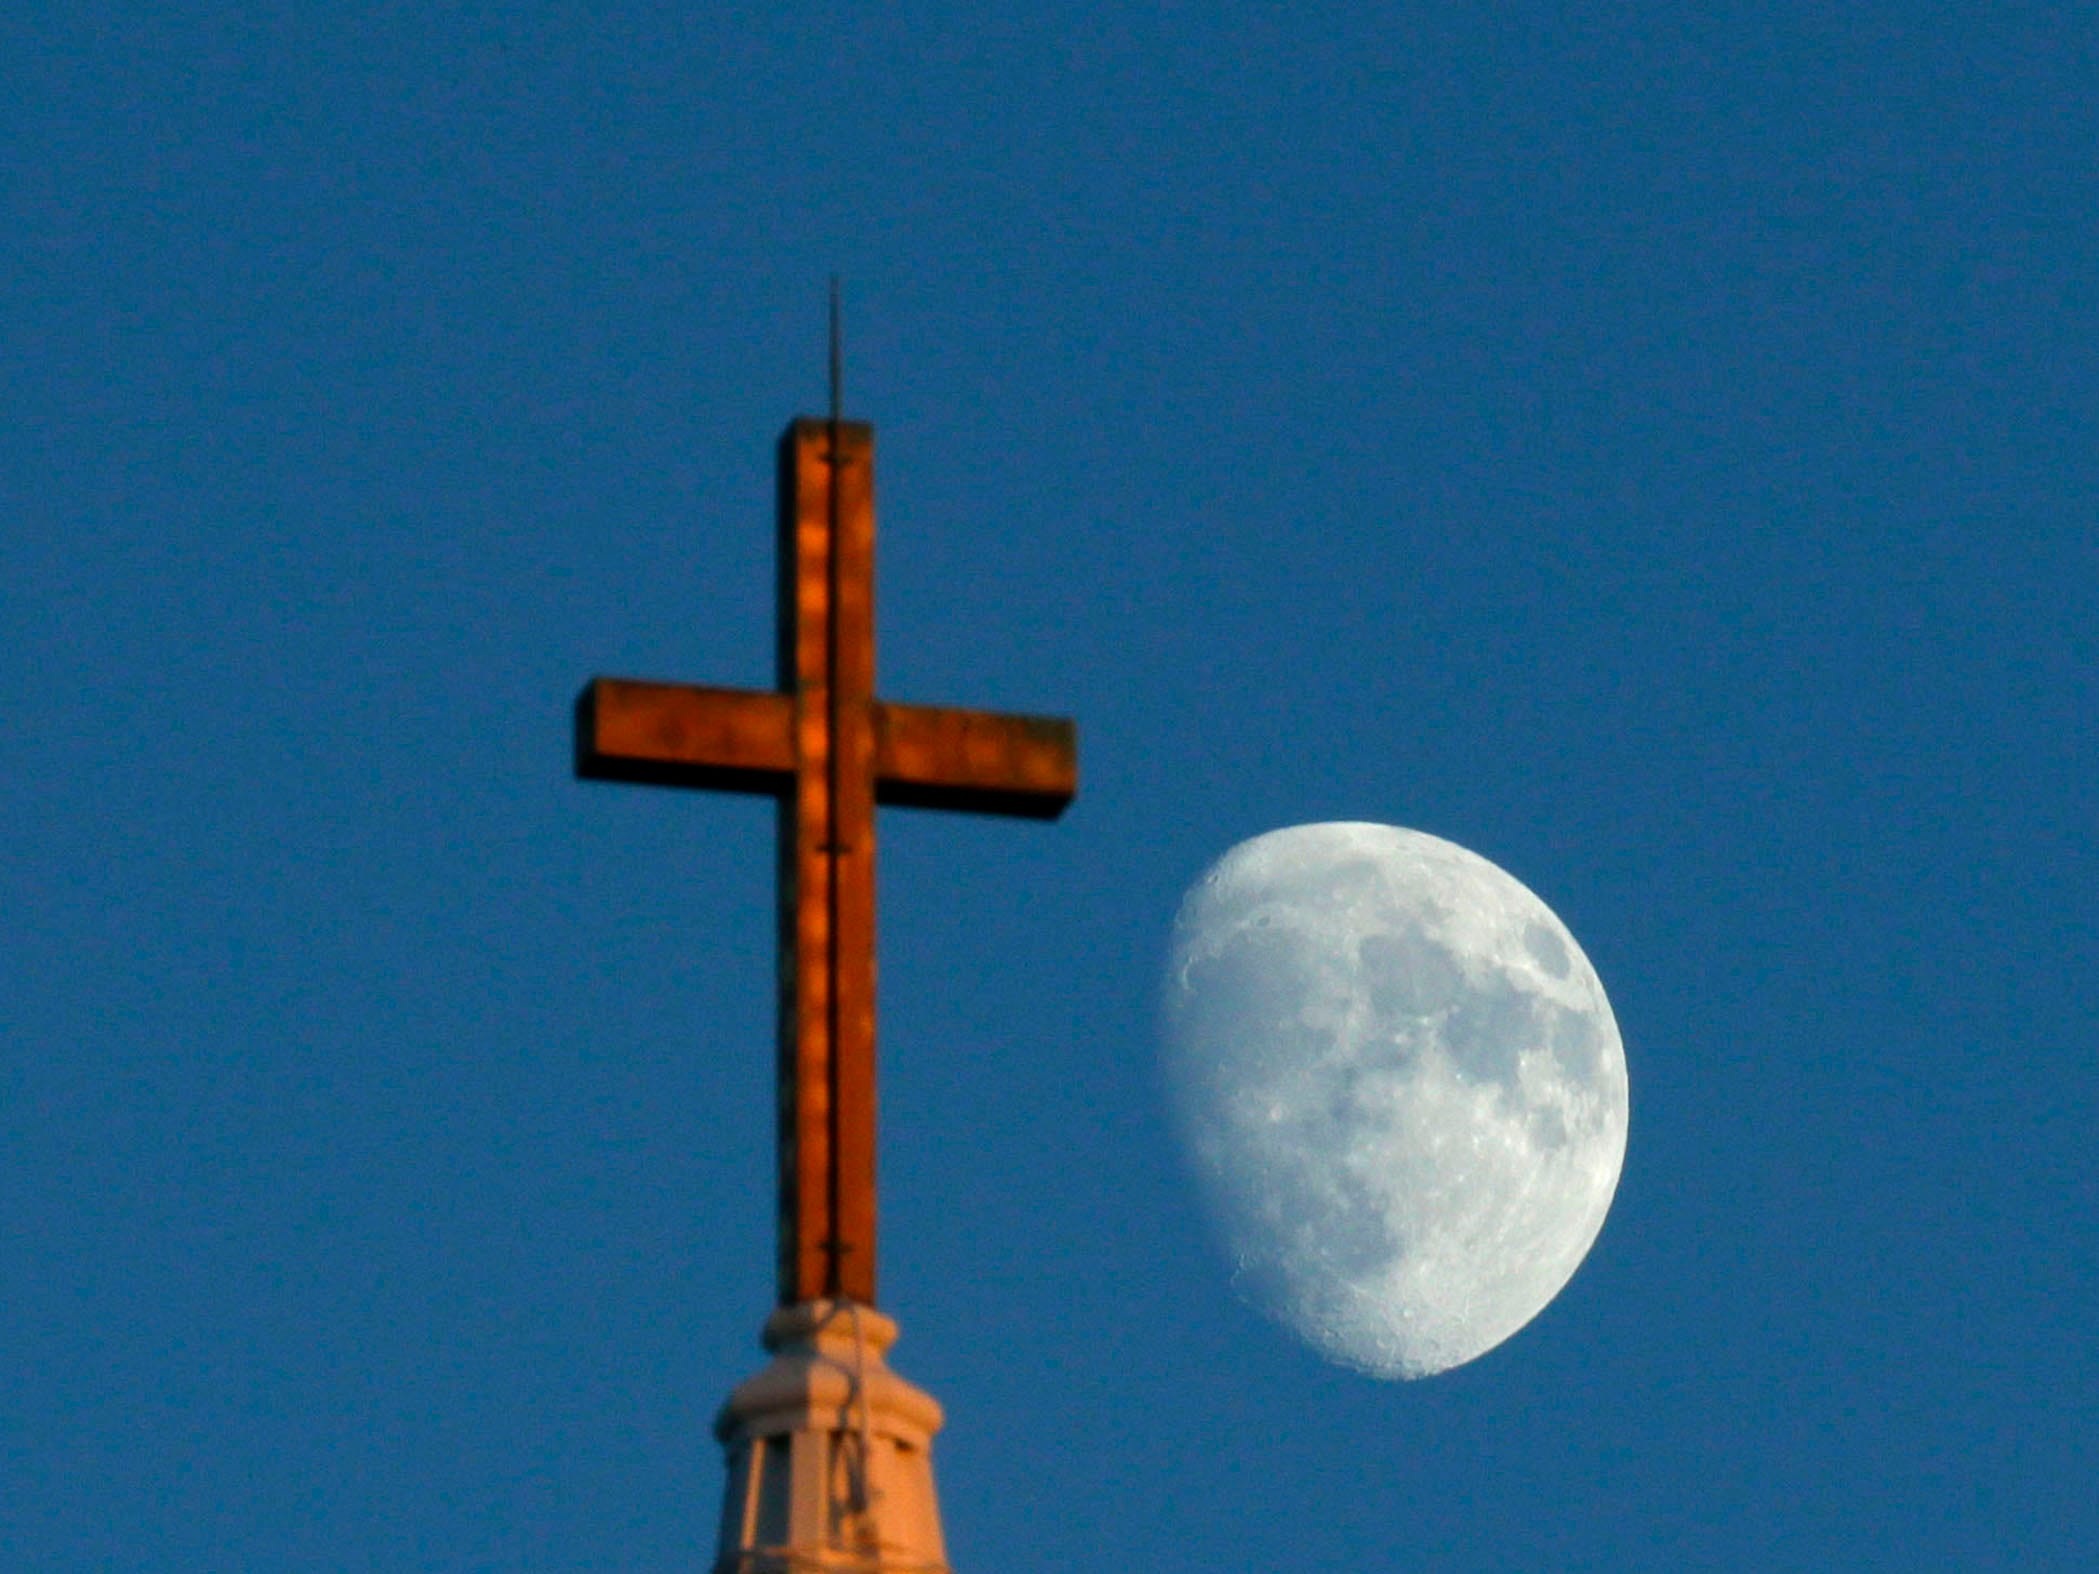 The moon rises over St. Christopher's Episcopal Church in River Hills on Nov. 30, 2017.